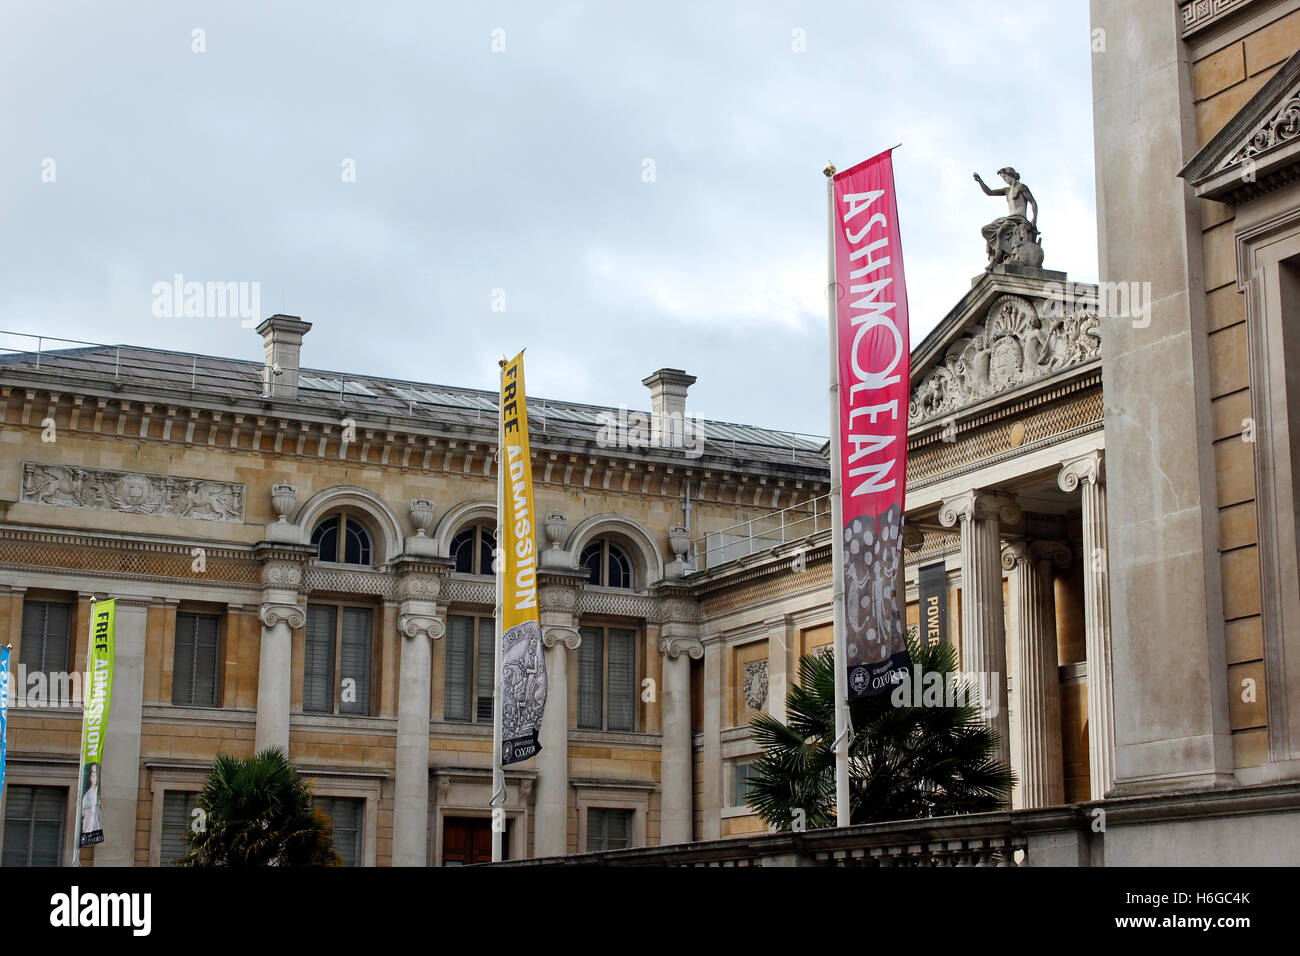 Ashmolean Museum Of Art And Archeology University Oxford Founded In 1683